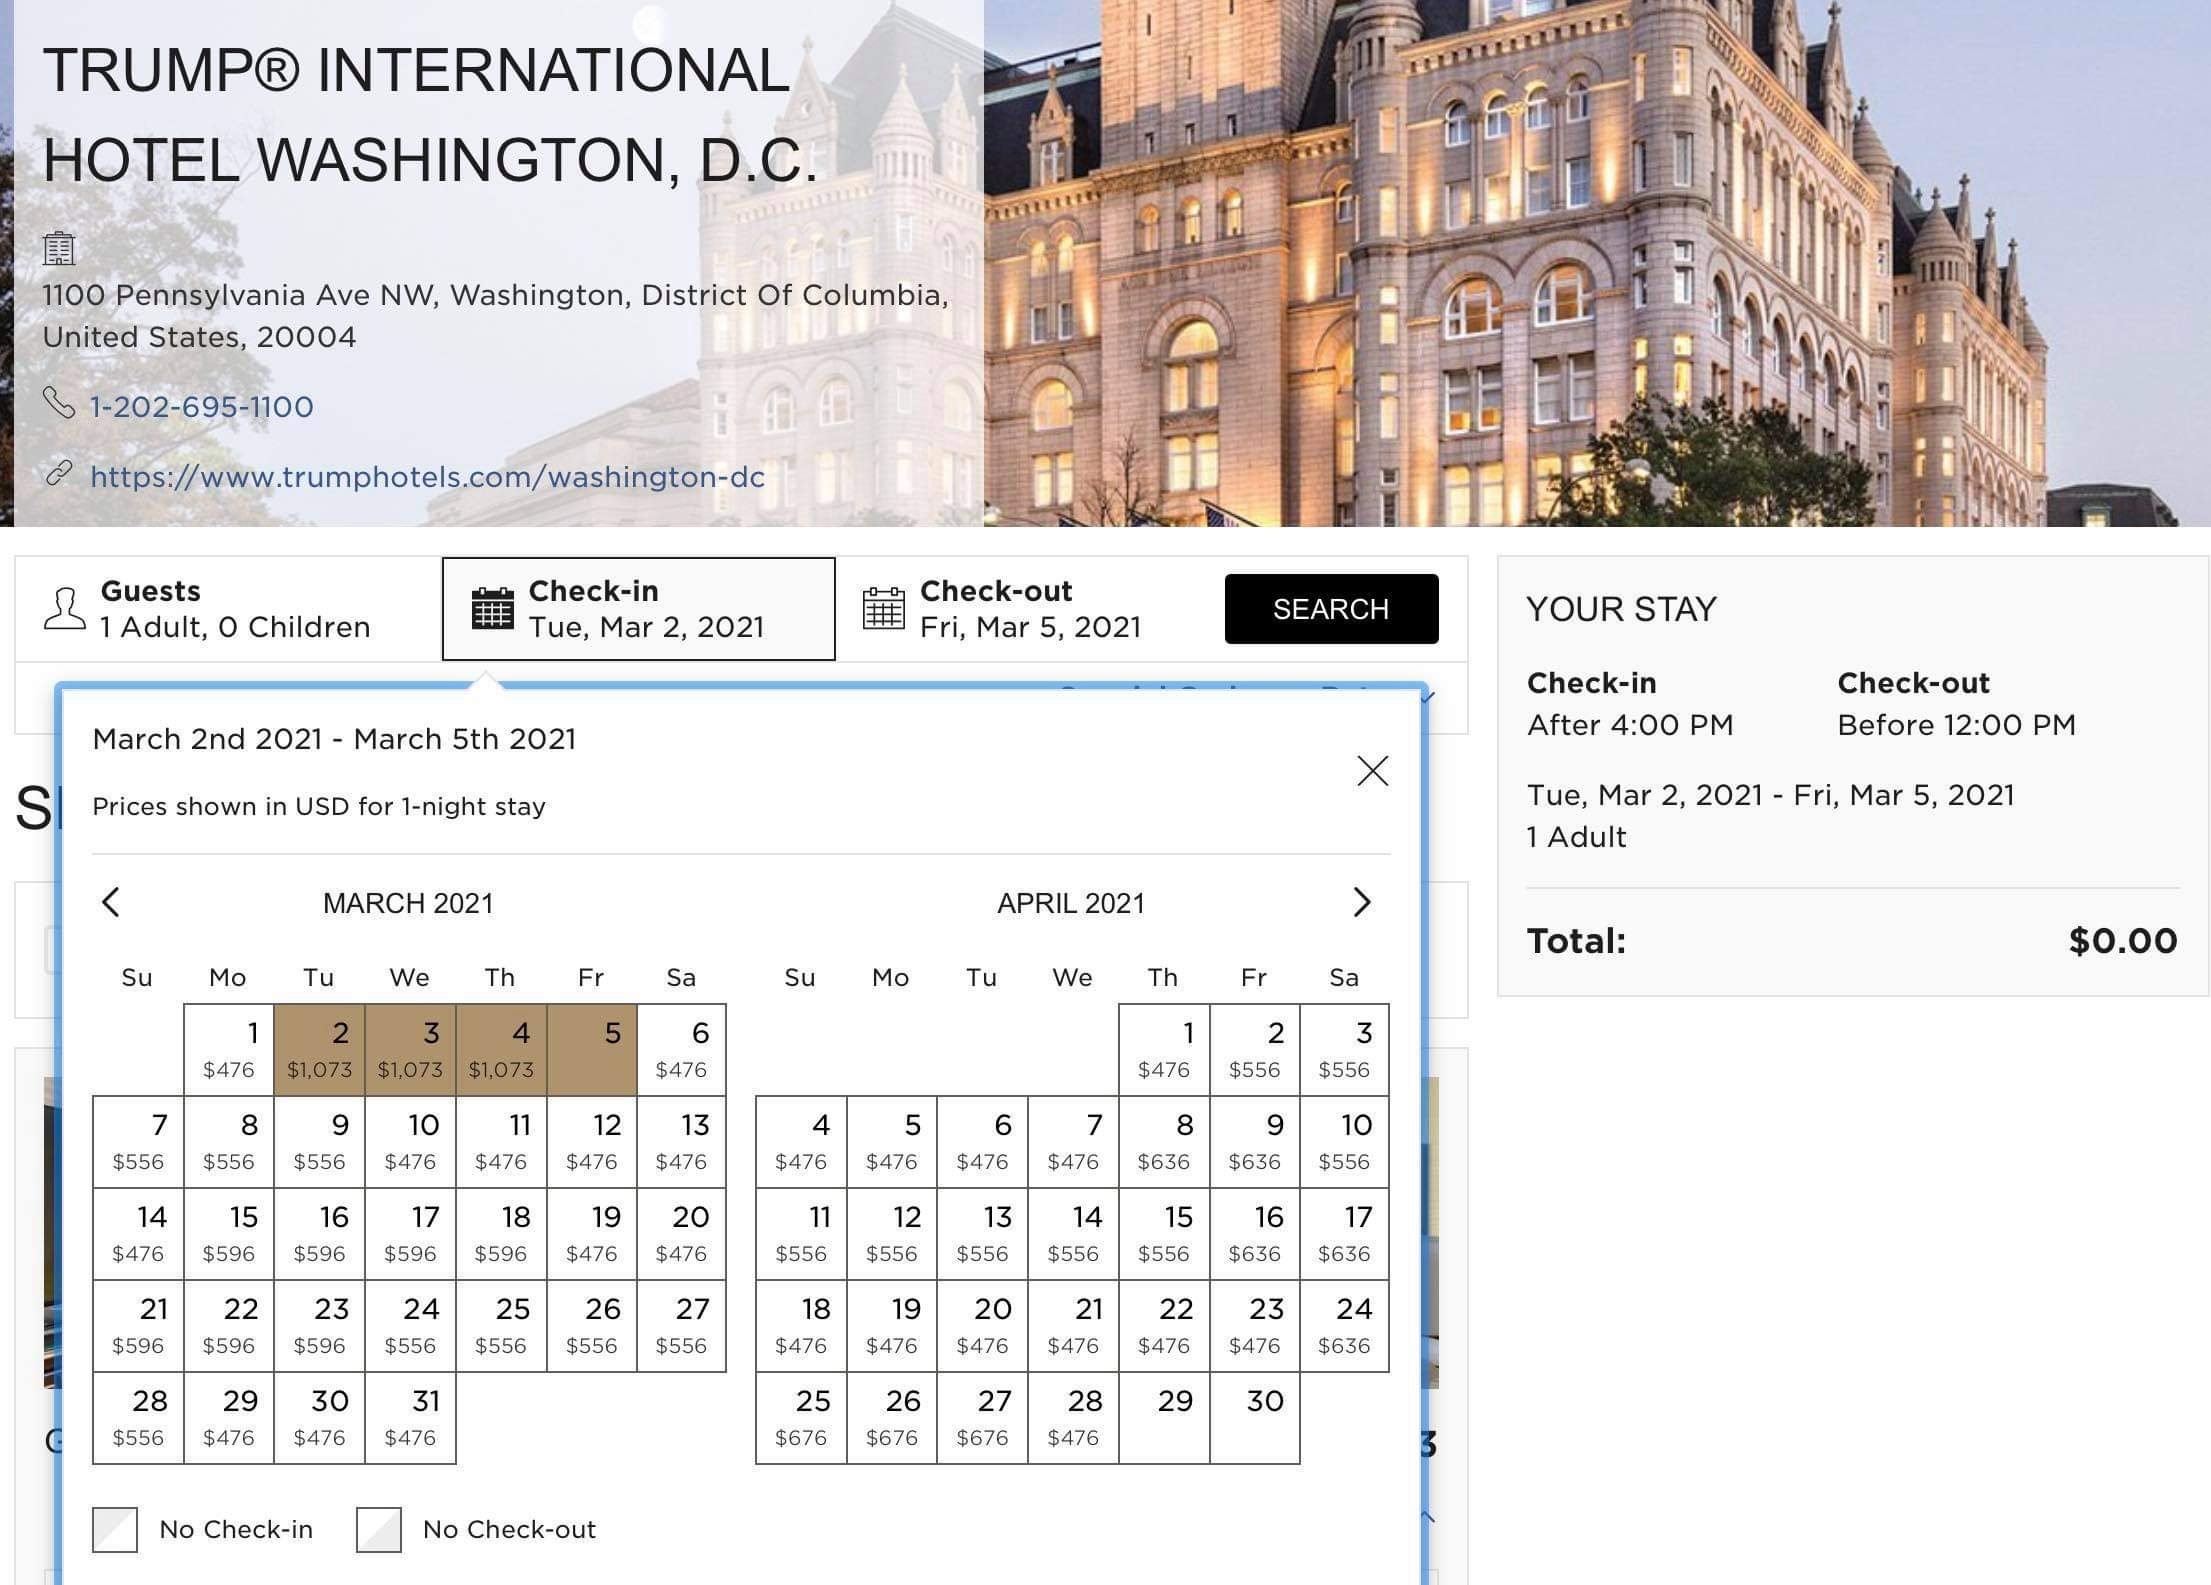 Example of Trump Hotel Invoice With Dates